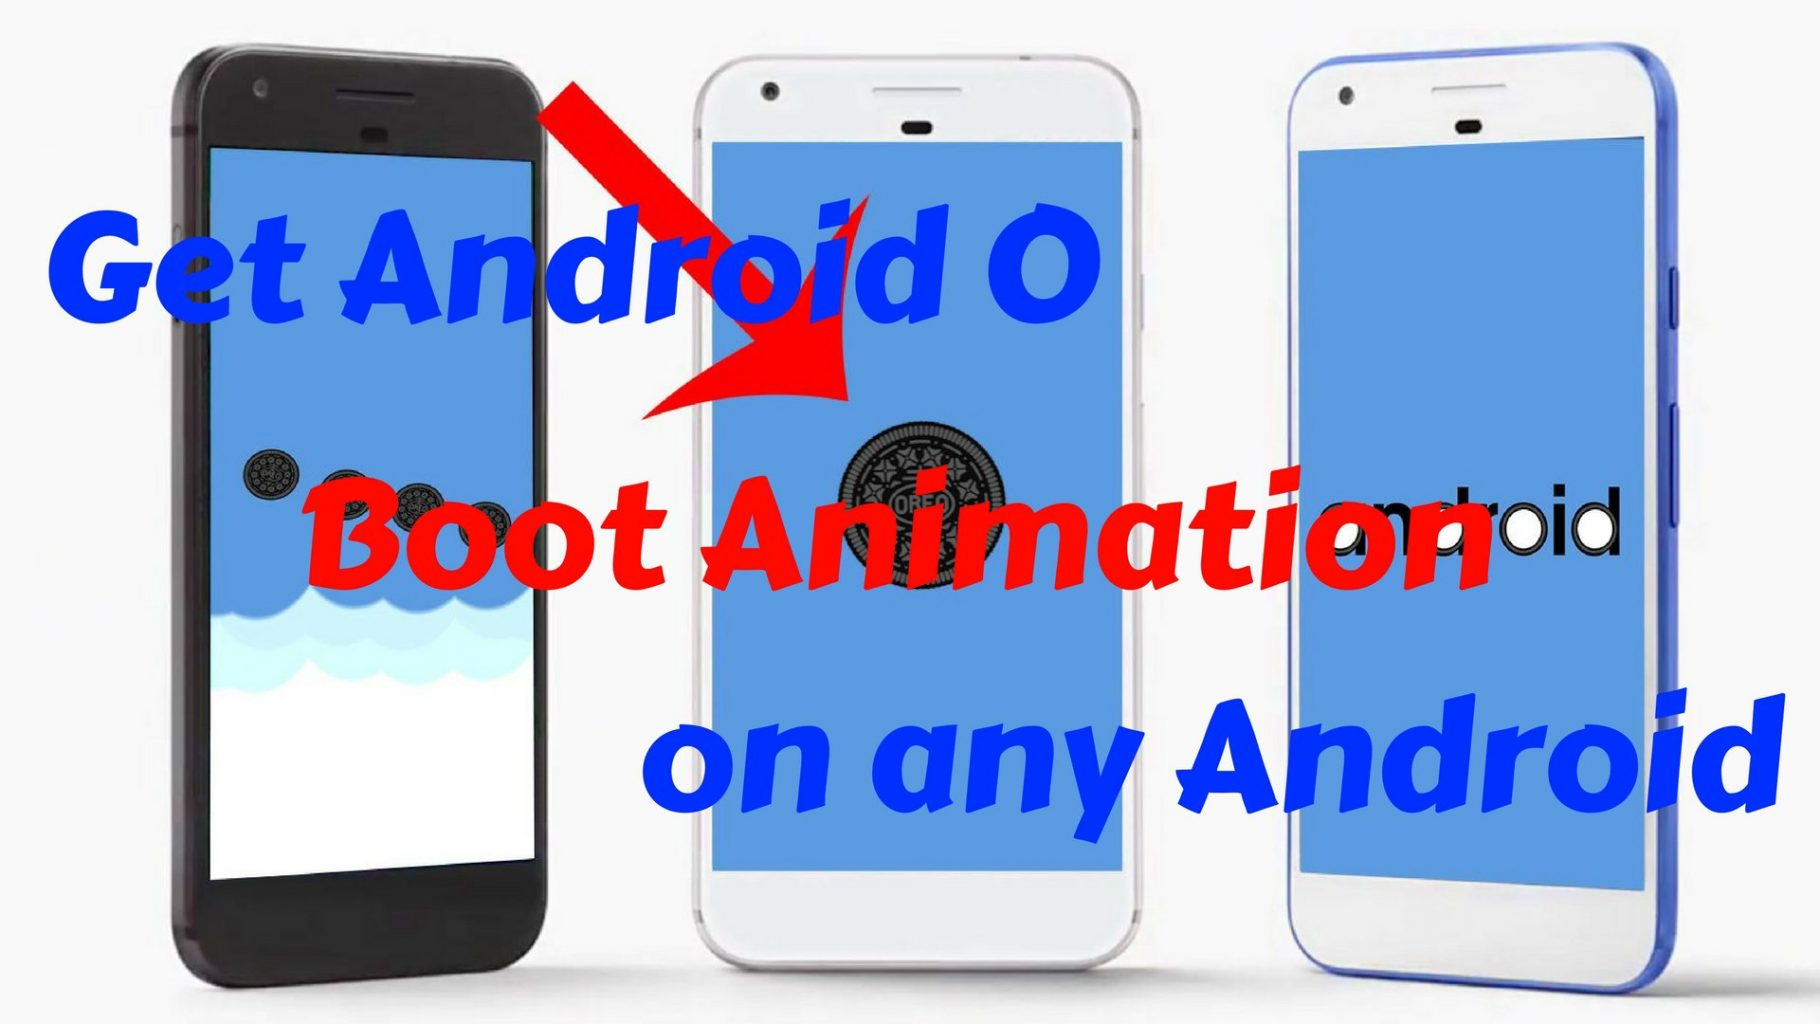 Get Android O boot animation on Any Android - Hacks & Geeks